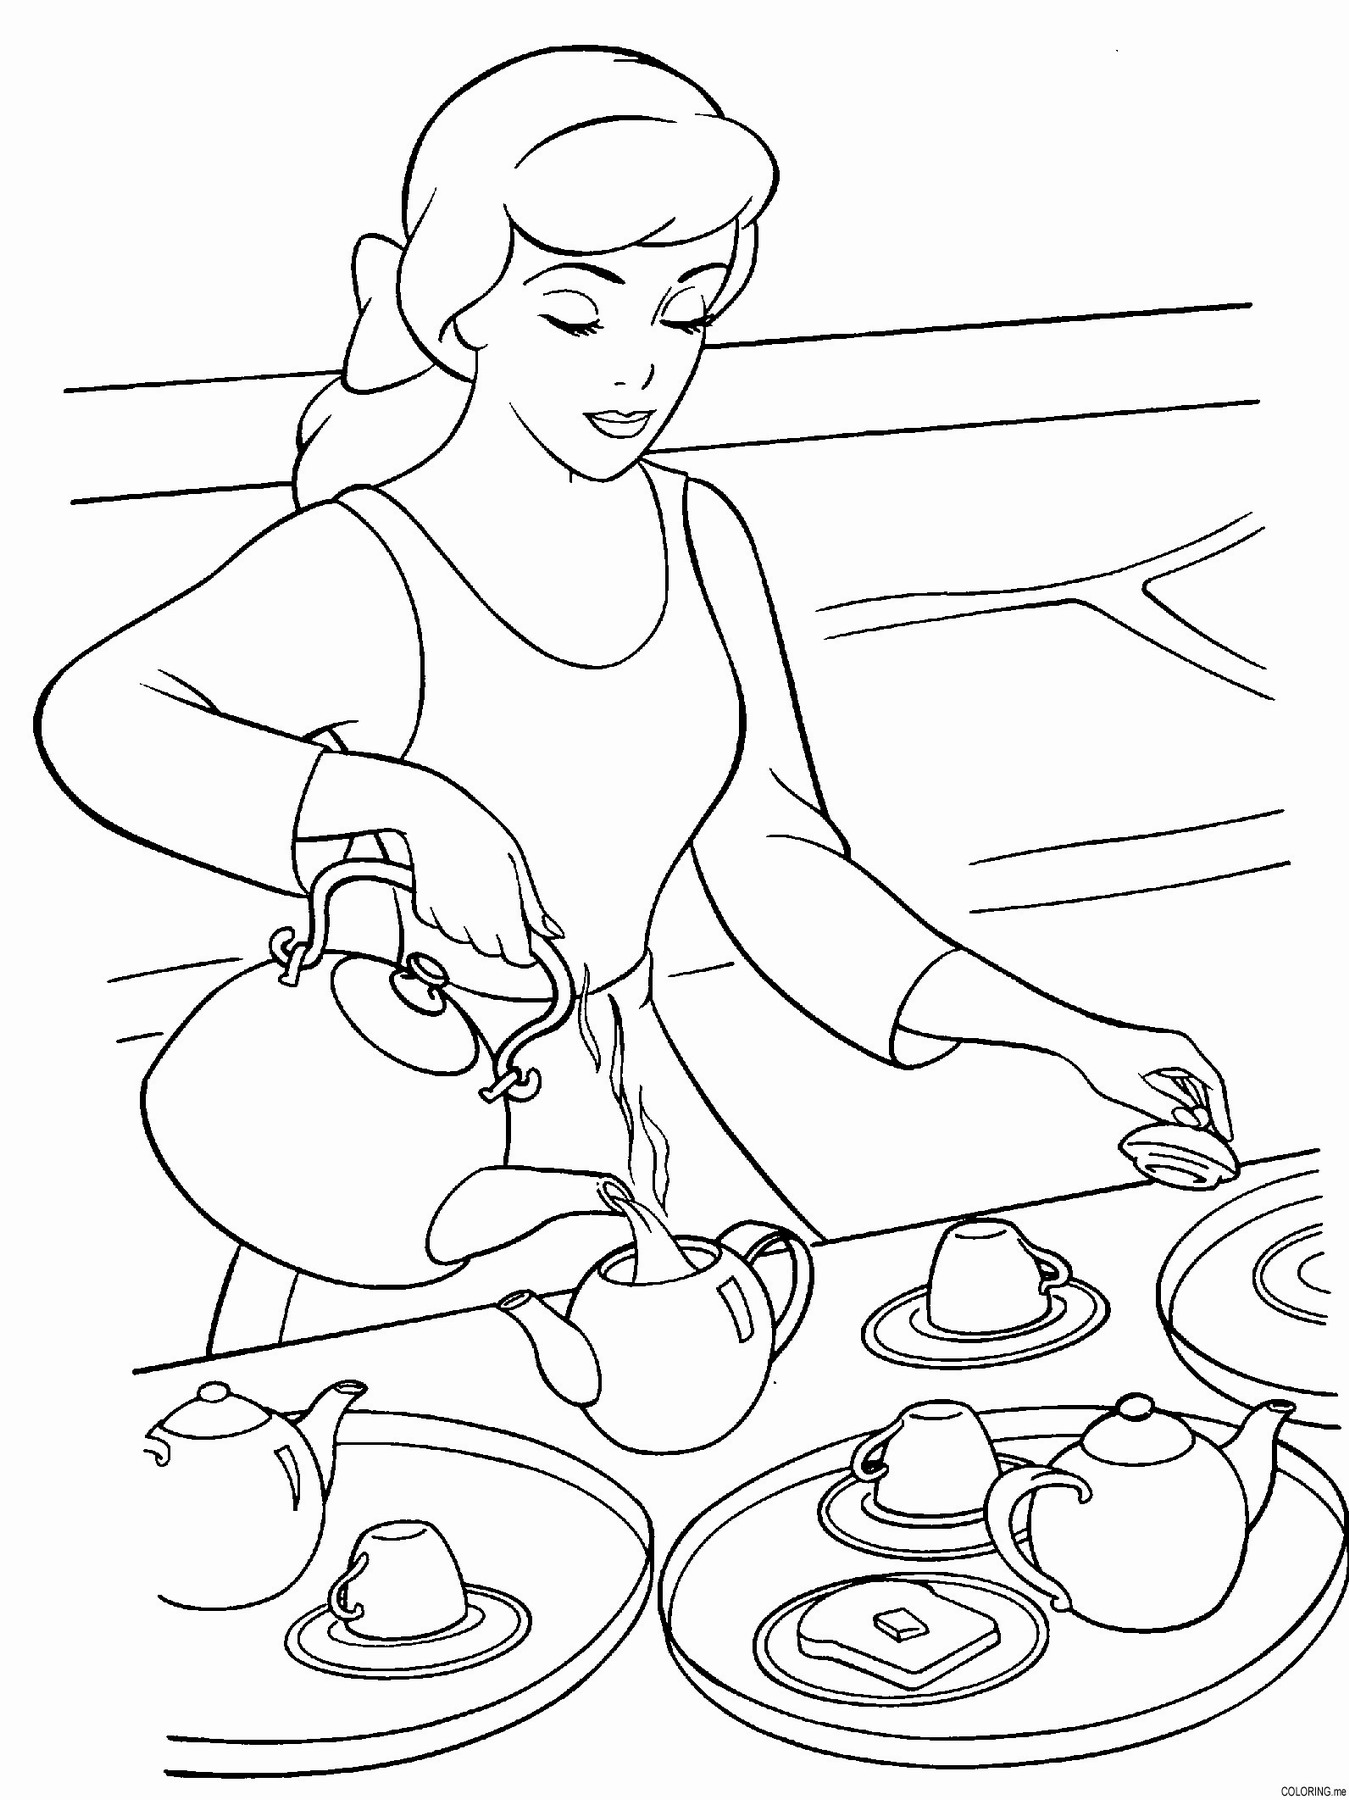 tea party colouring pages tea party coloring pages to download and print for free tea pages party colouring